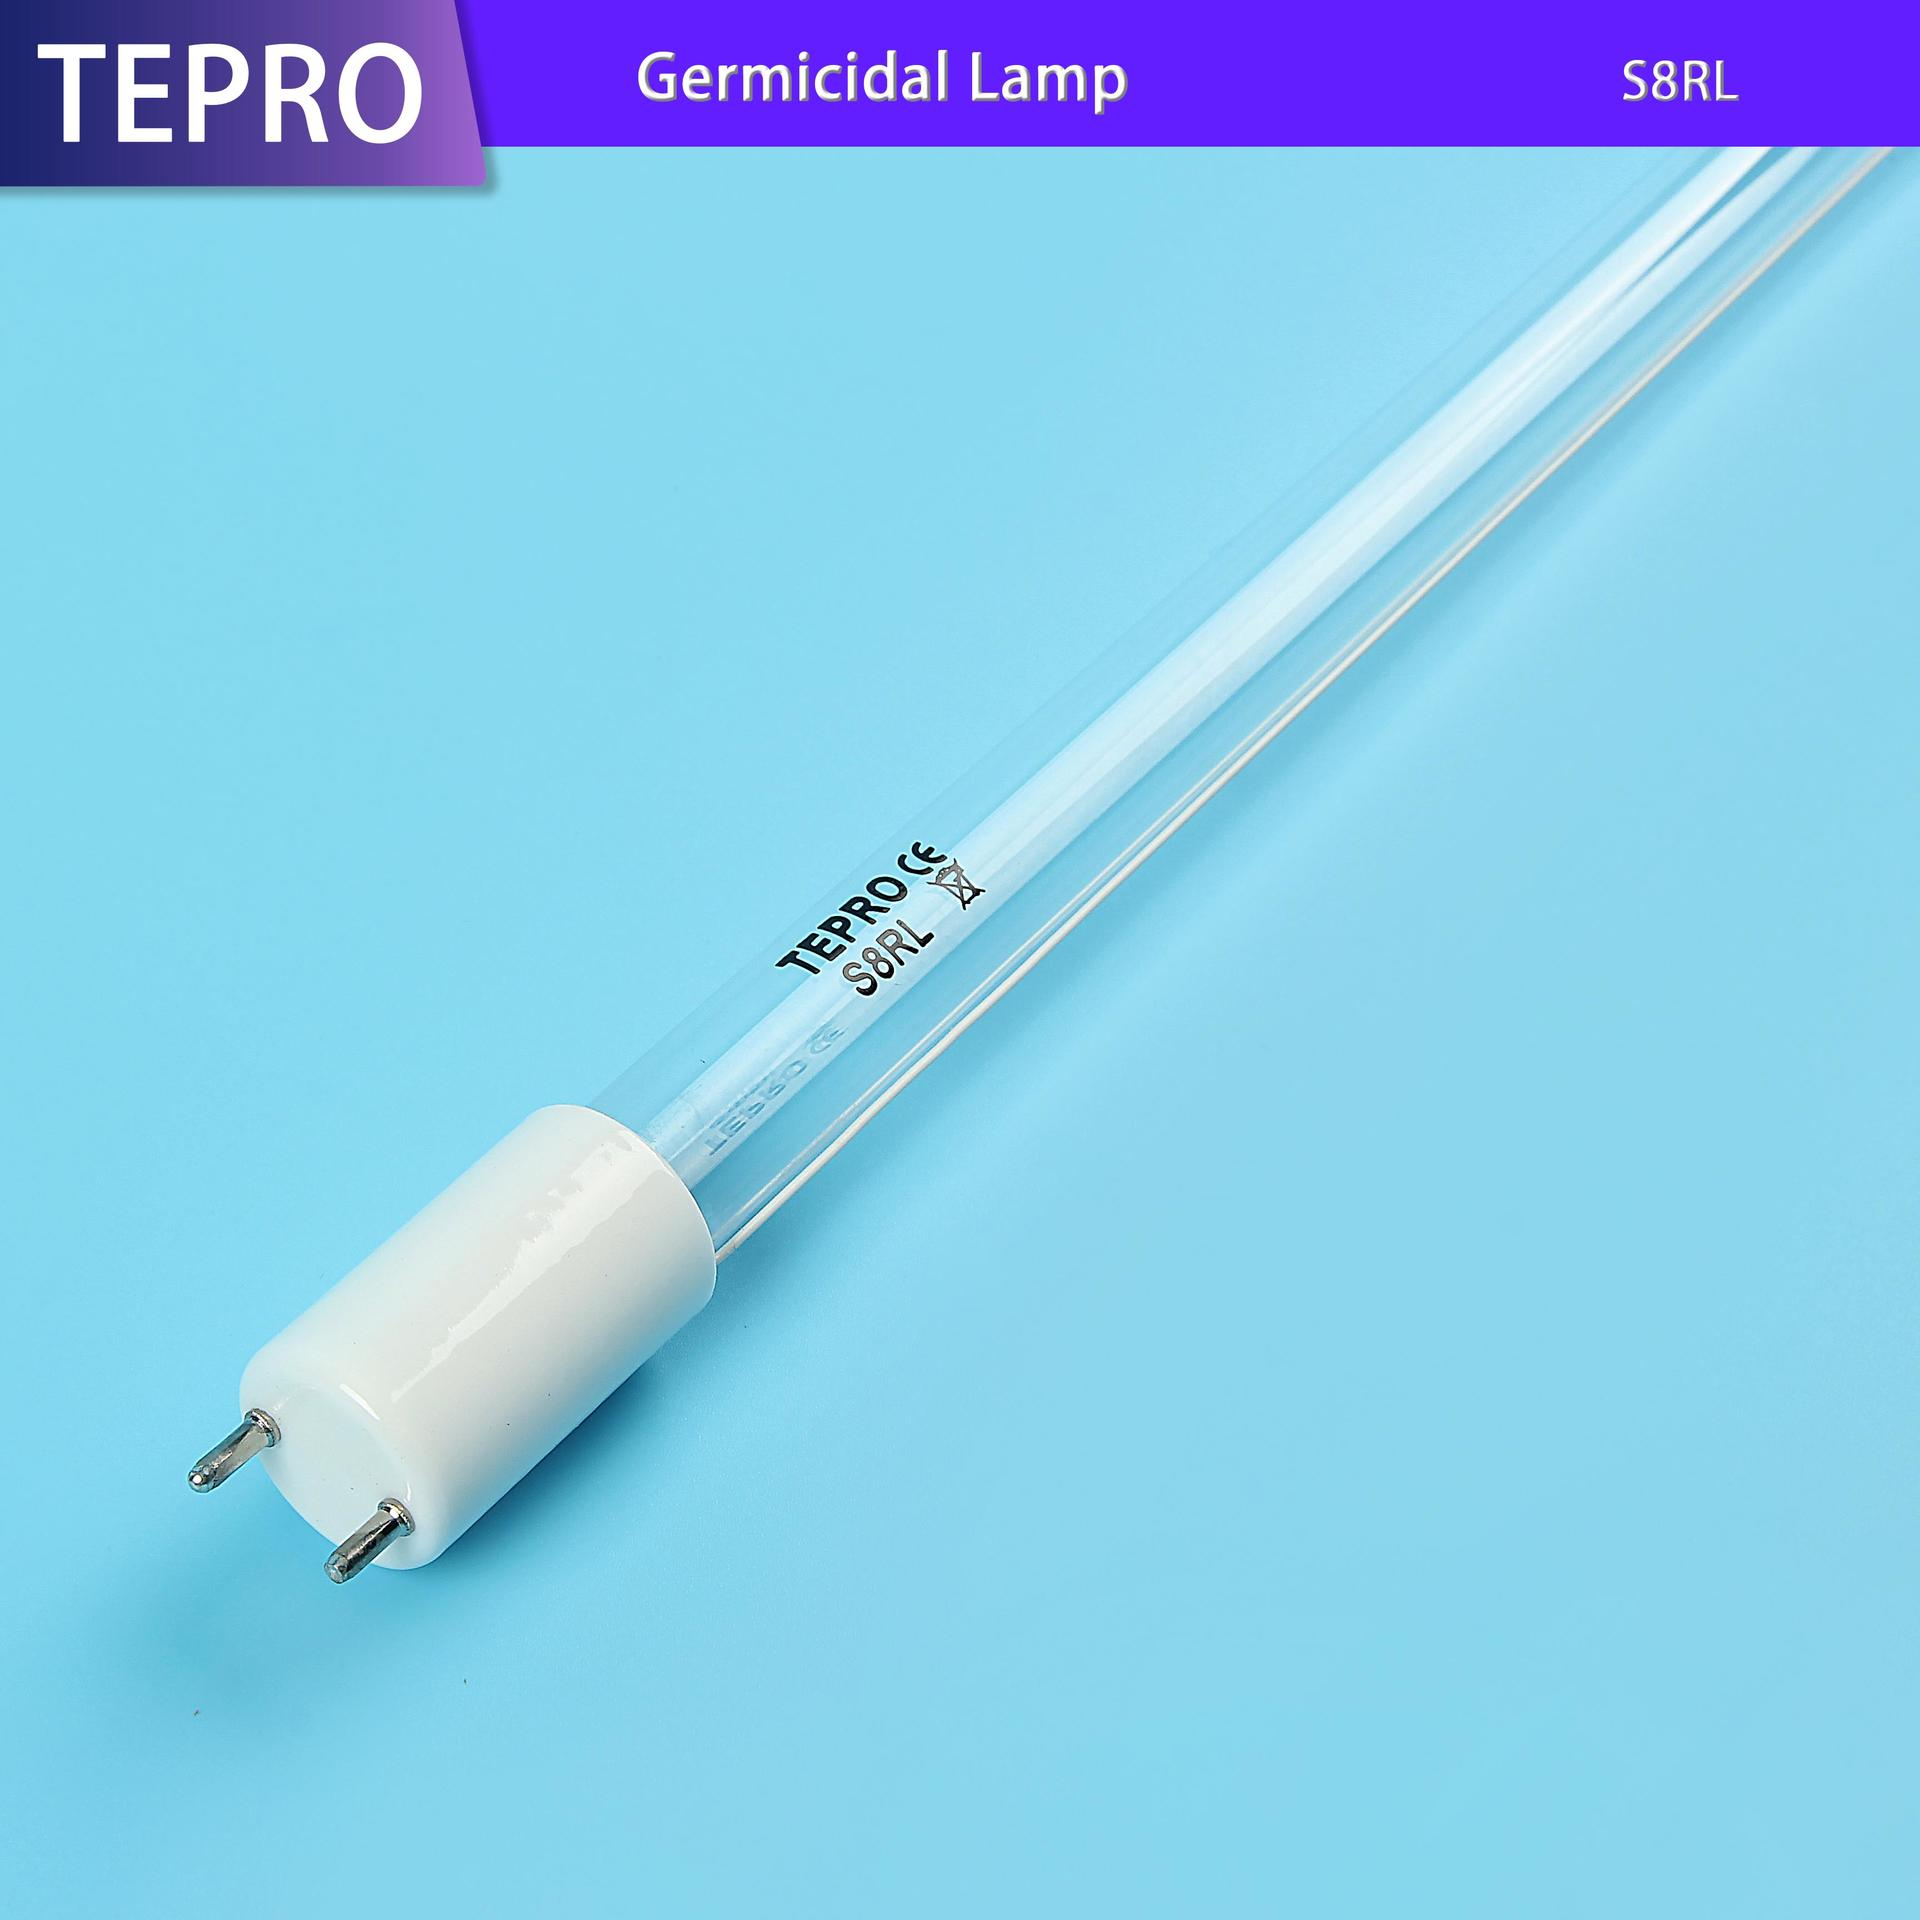 R-CAN Germicidal UV Replacement Lamps S8RL